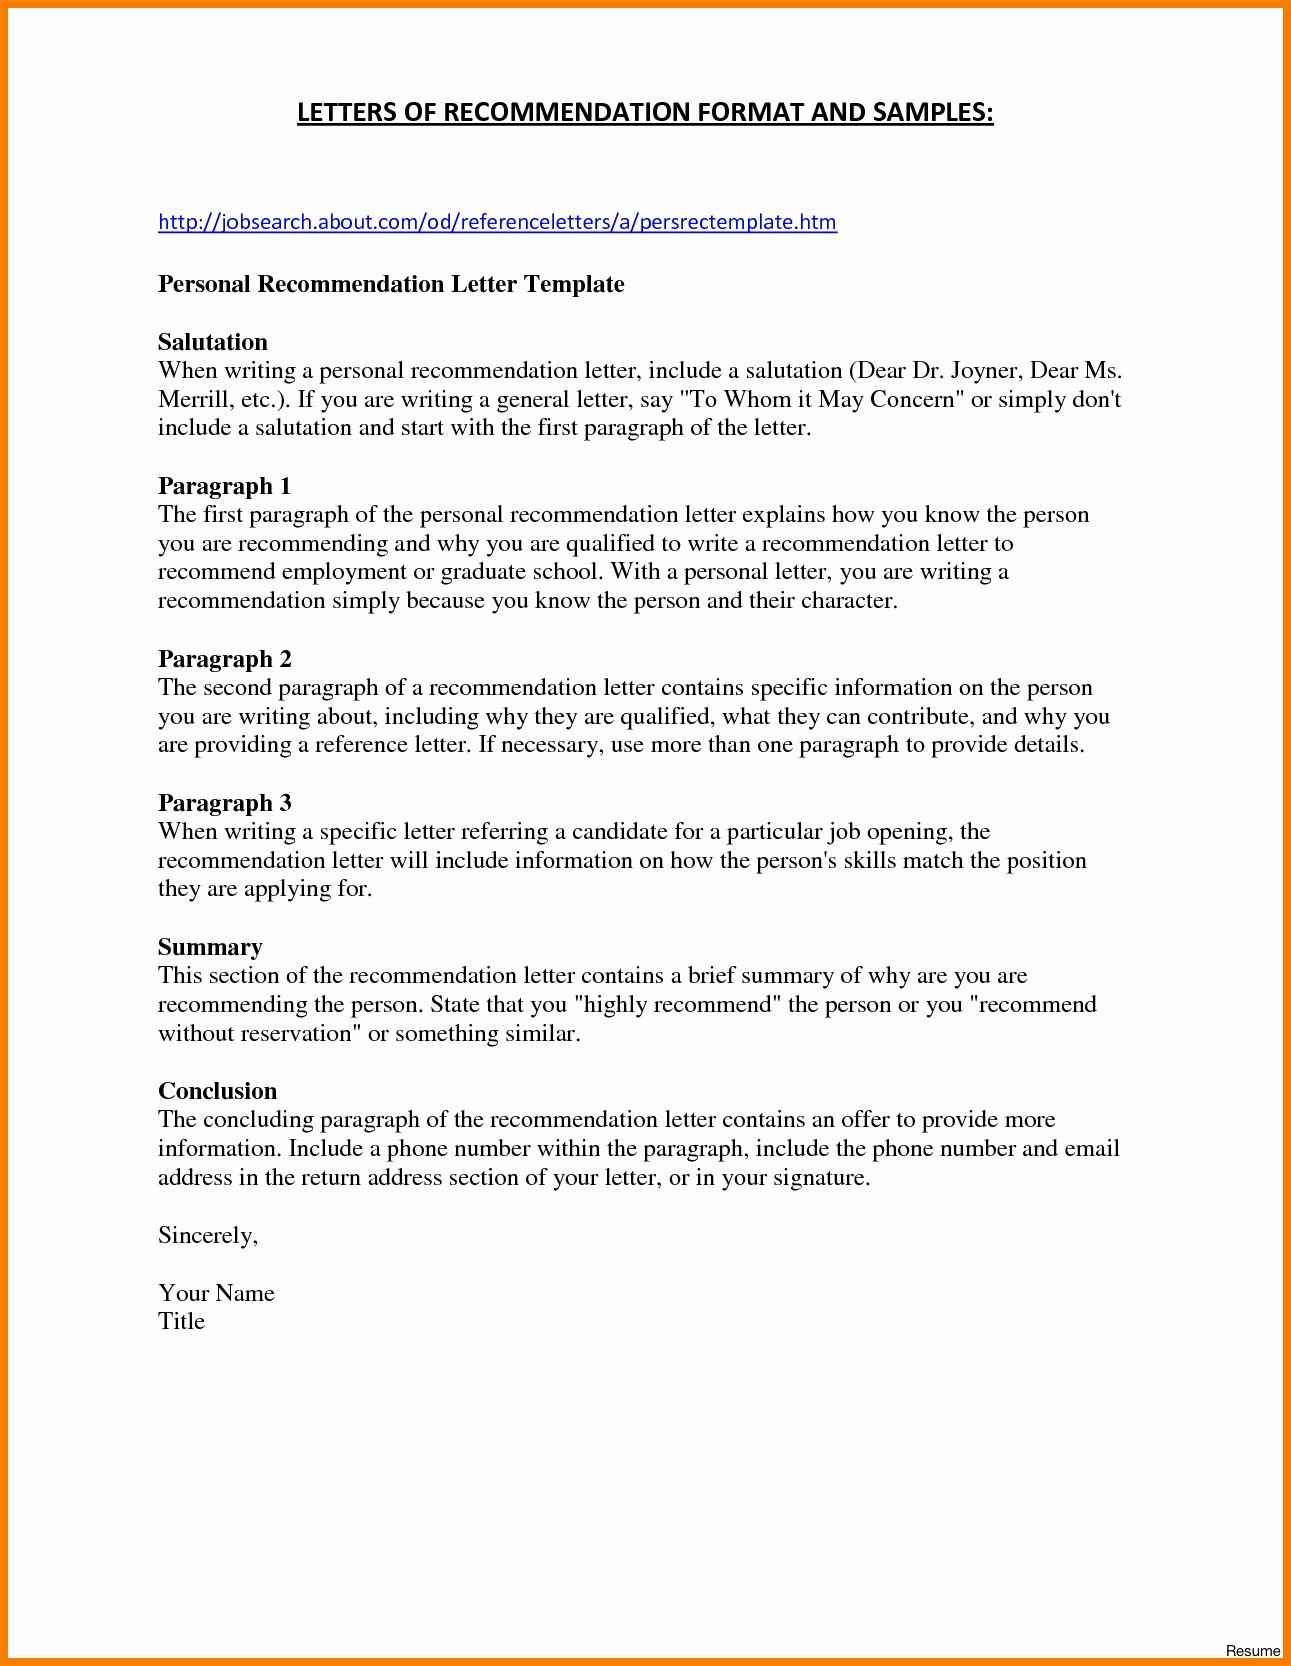 Business Reference Letter Template Word - Business Letter format Template Word Inspirationa Business Cover